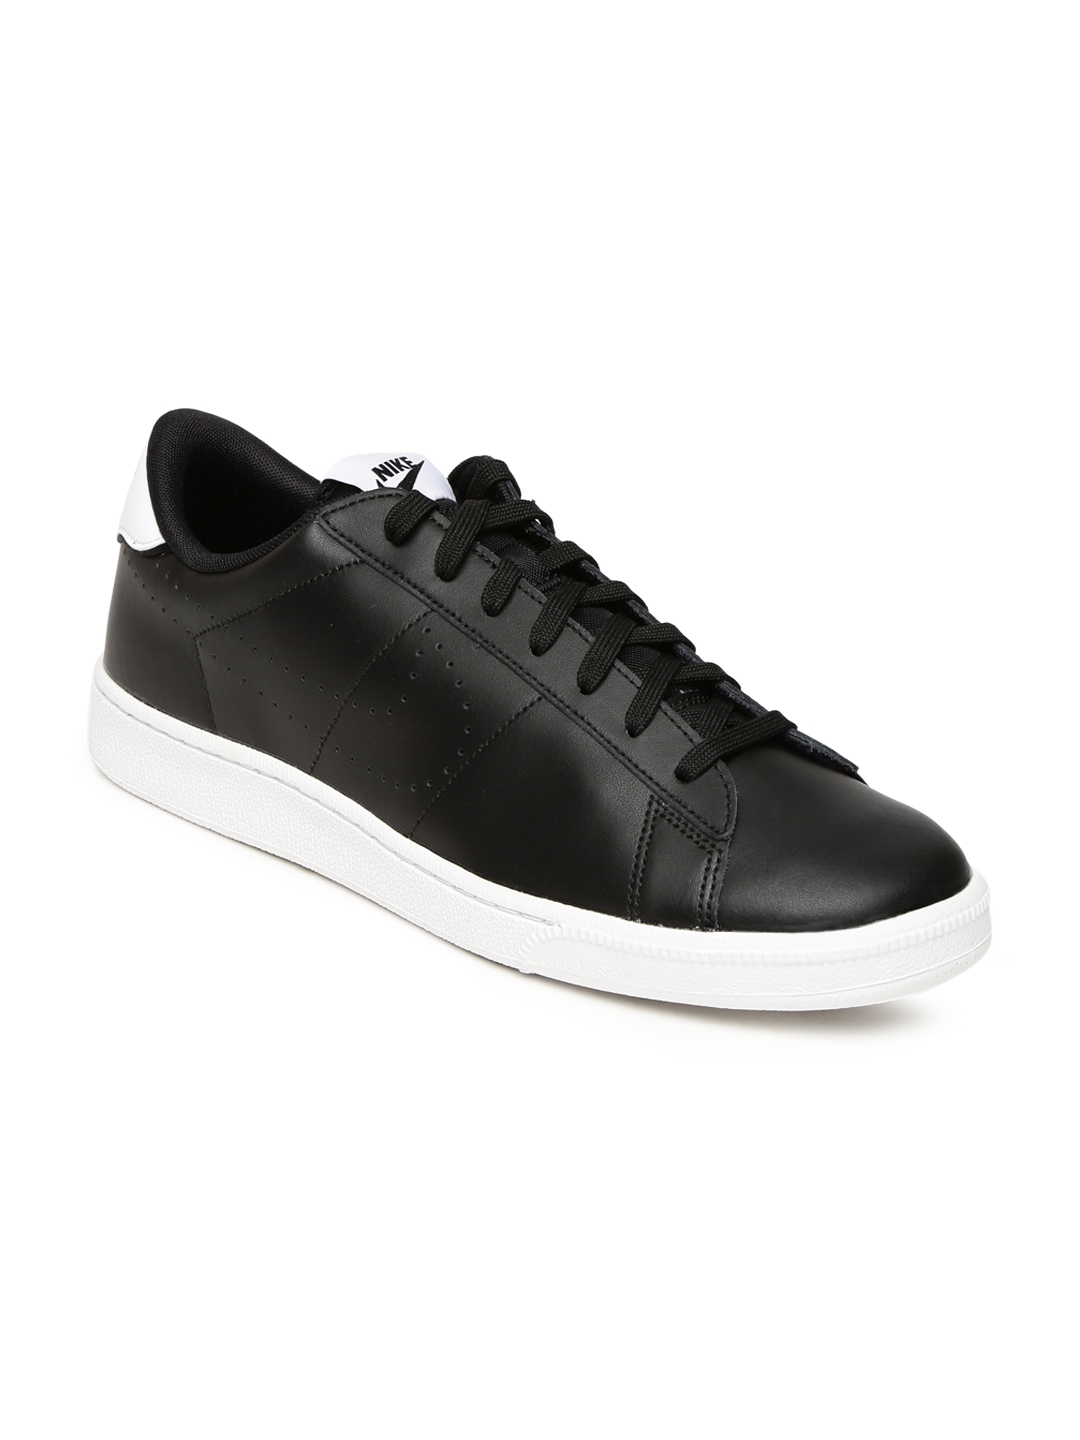 new styles 39641 2b680 Nike Men Black TENNIS CLASSIC CS Leather Sneakers